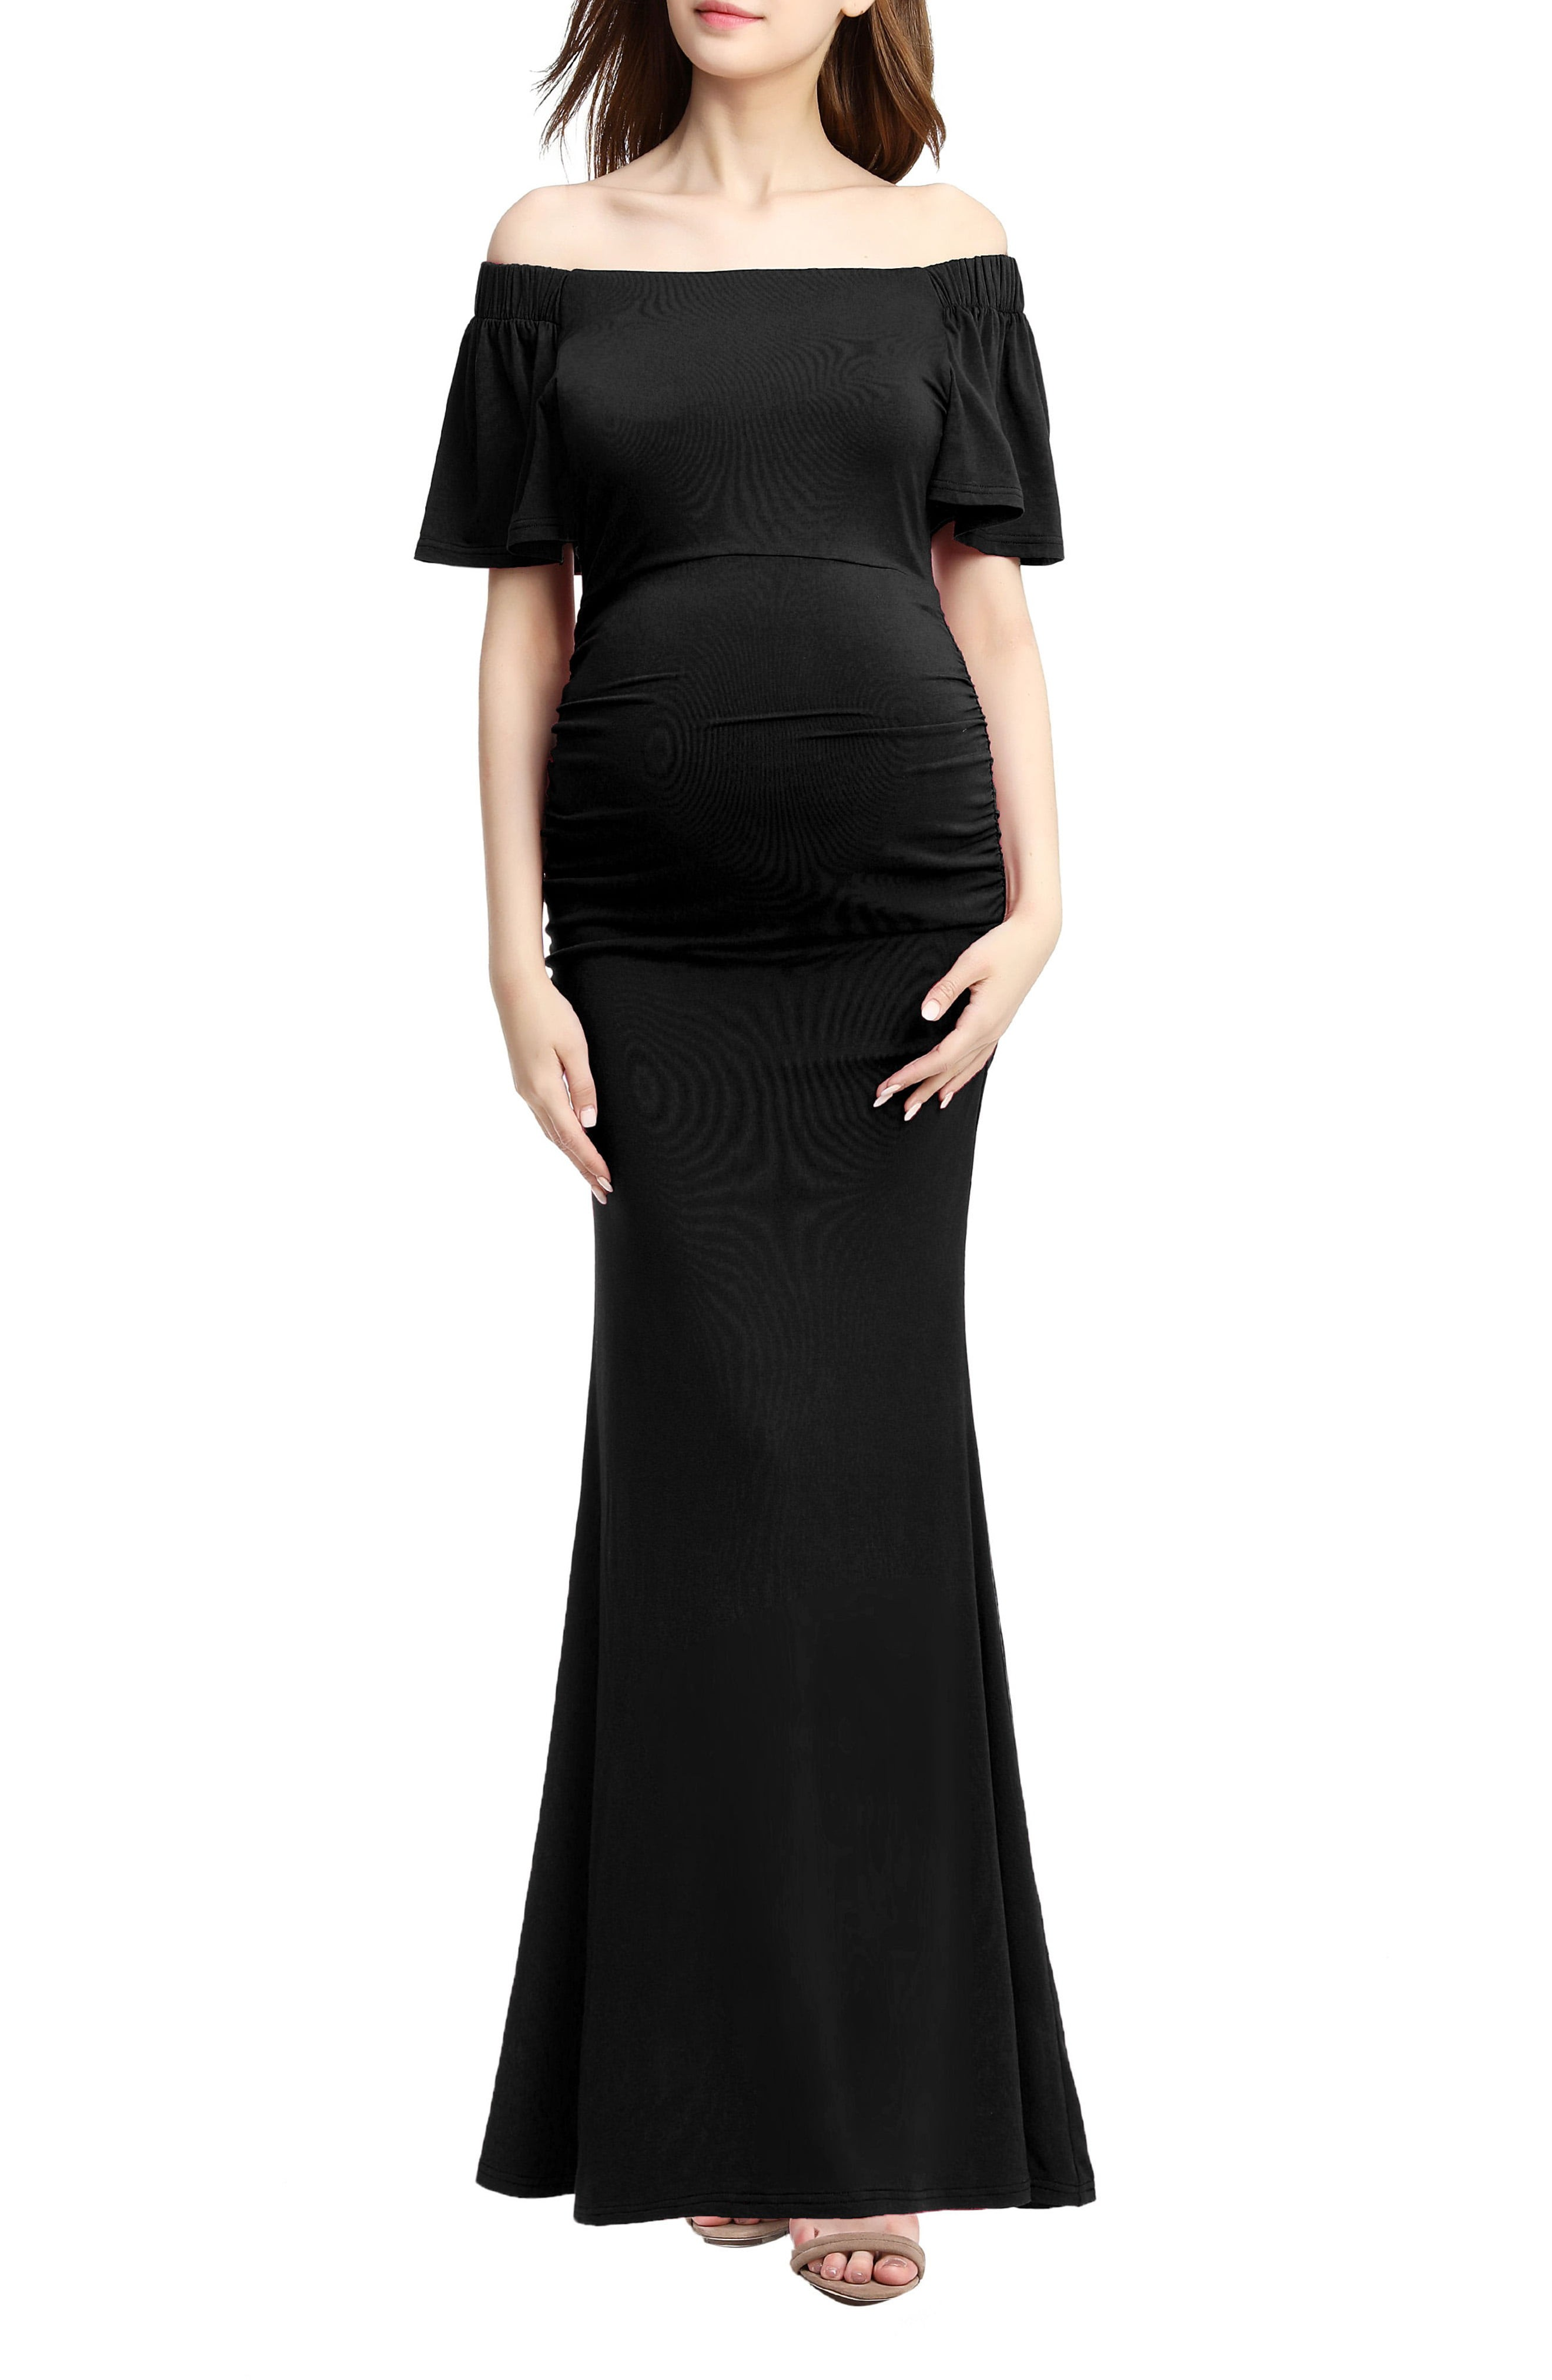 Maternity dress for a wedding guest fashionable maternity dress for a wedding ombrellifo Choice Image